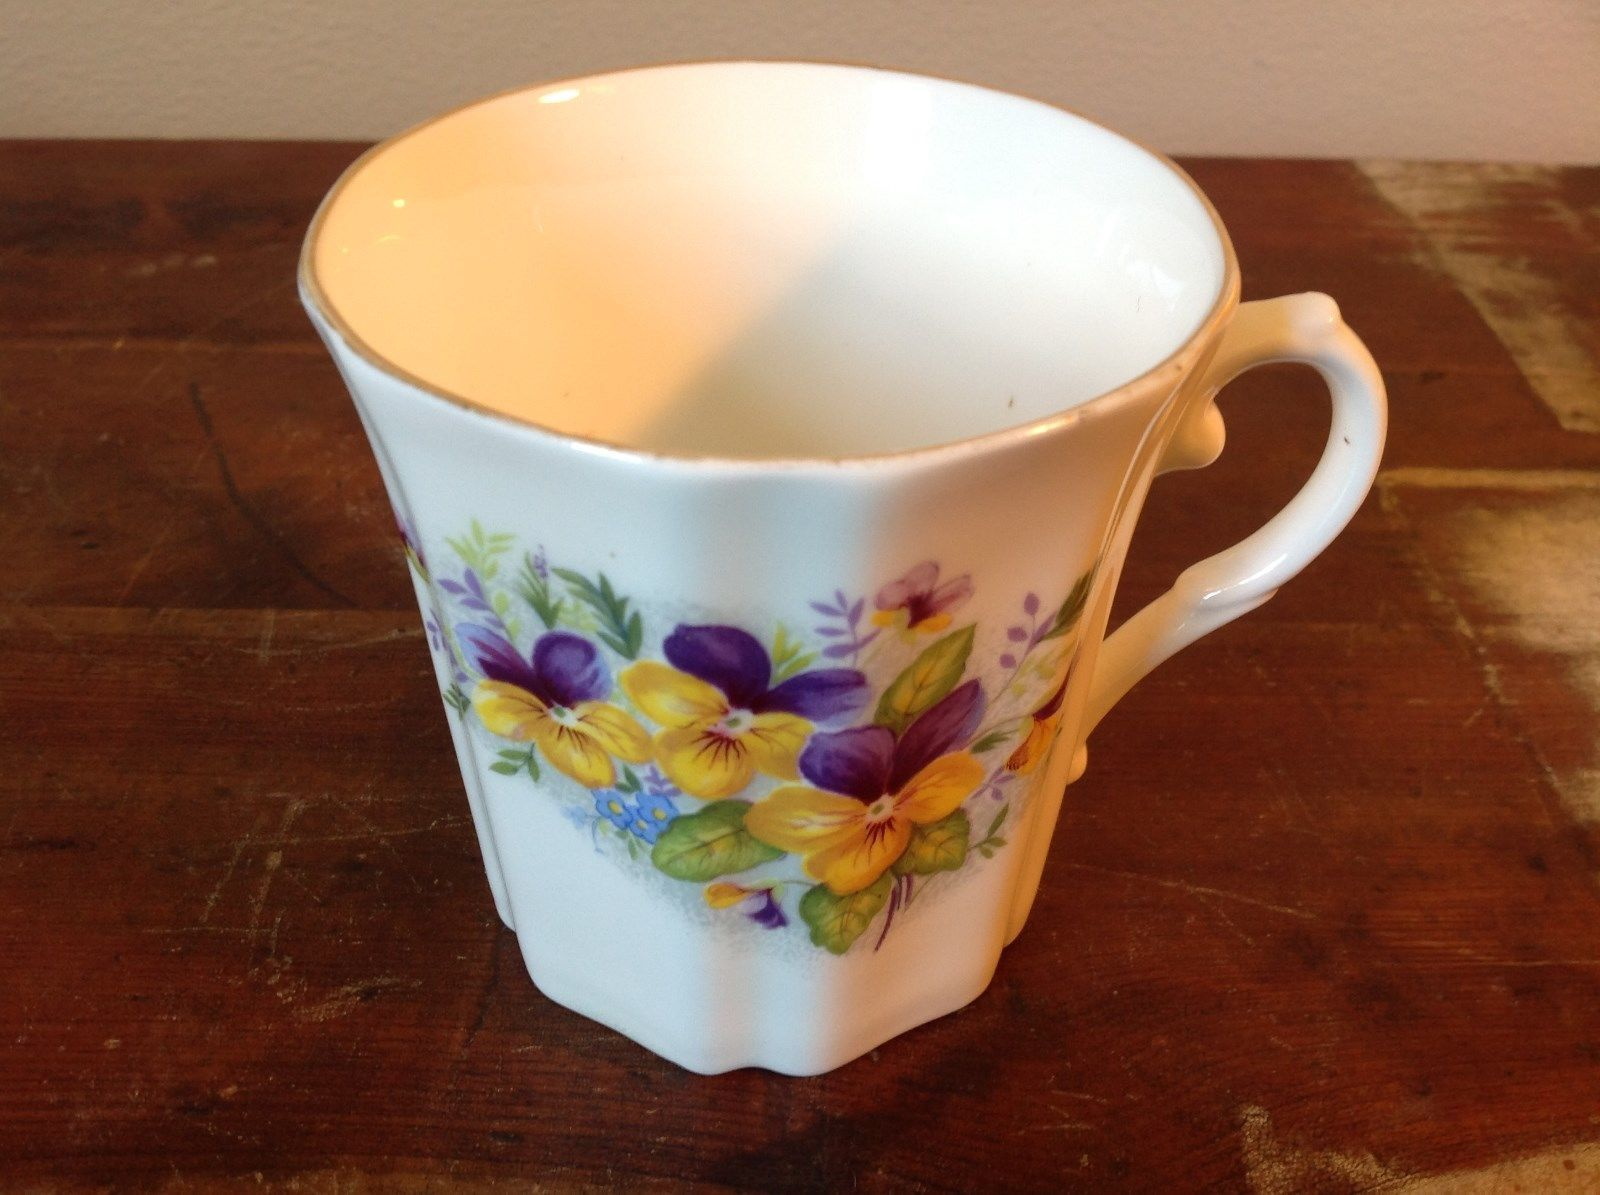 Bone China Vintage Tea  Cup England Royal Grafton violets johnny jump ups